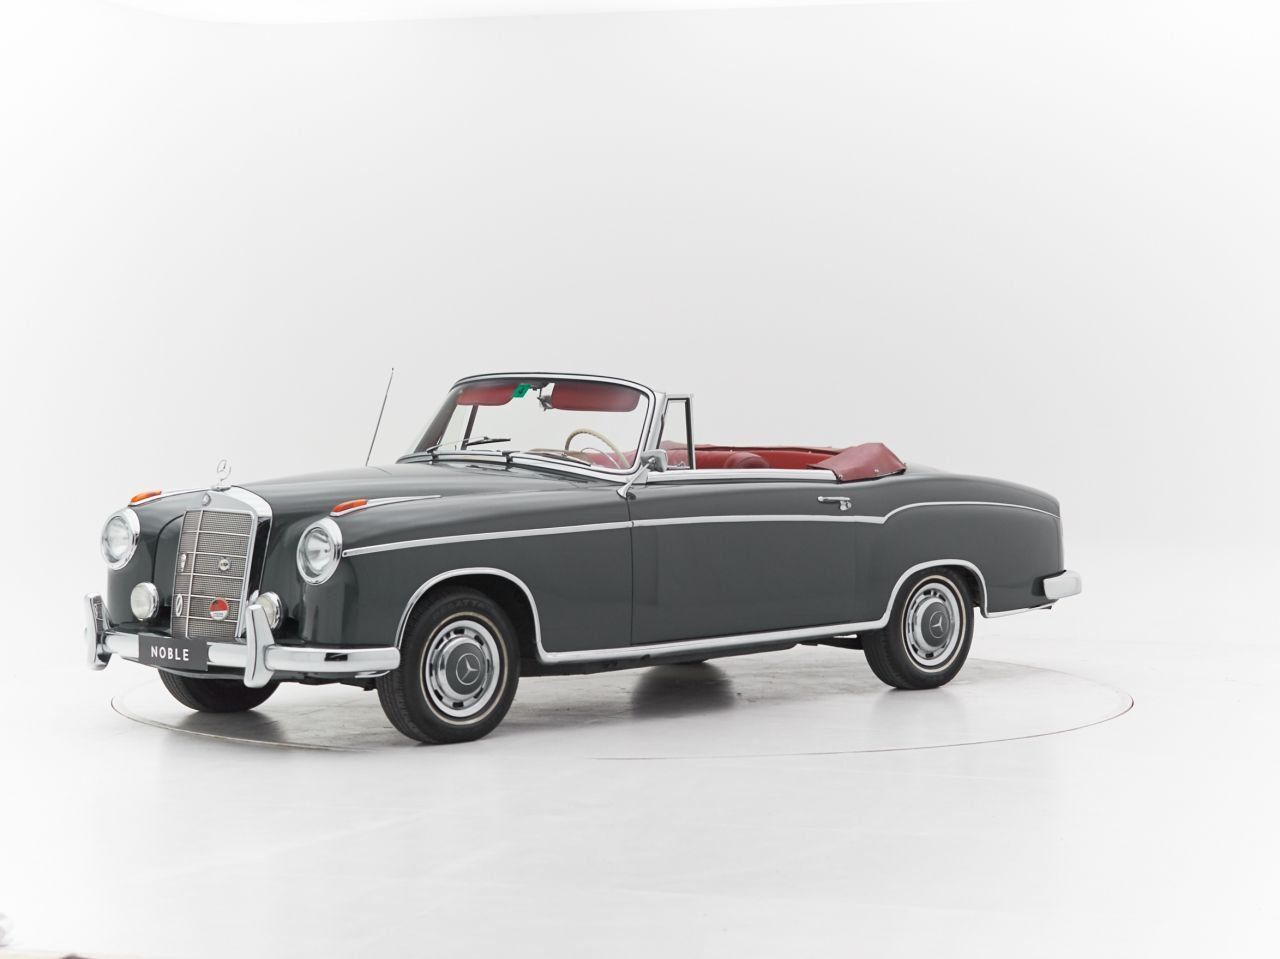 1959 MERCEDES 220S PONTON CABRIOLET for sale For Sale by Auction (picture 1 of 6)